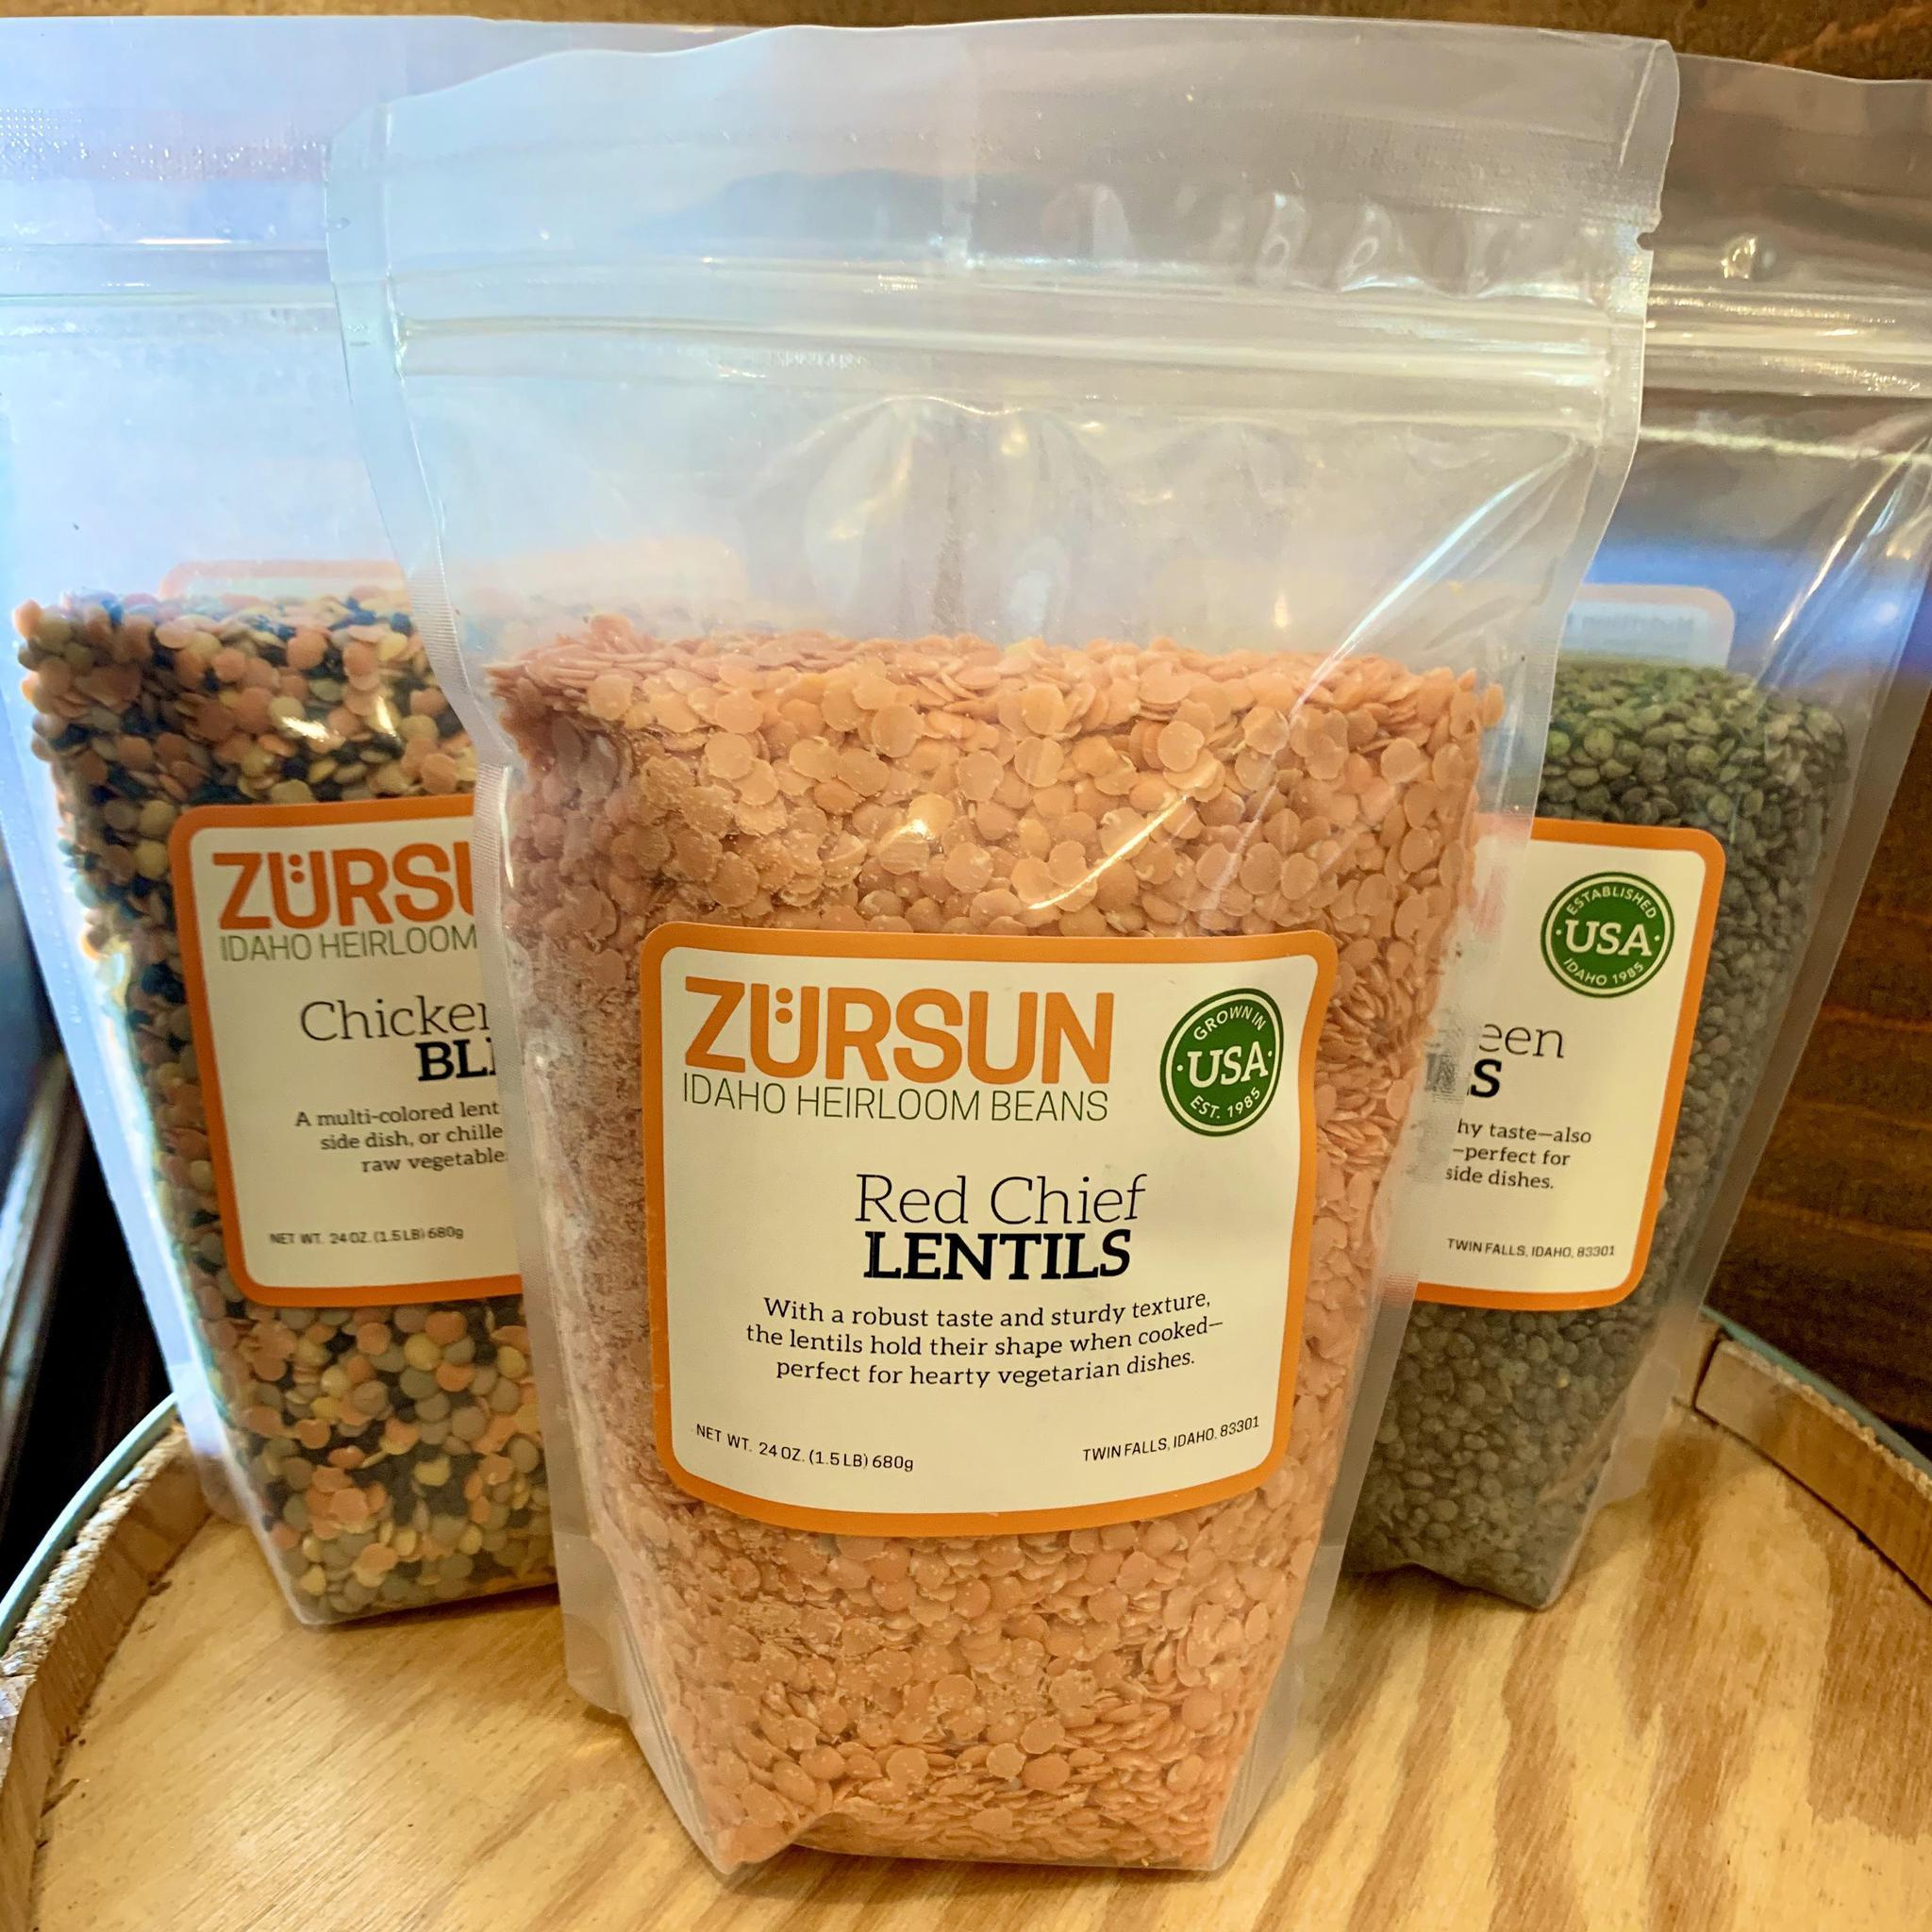 Lentil Blends by Zürsun Idaho Heirloom Beans Red Chief